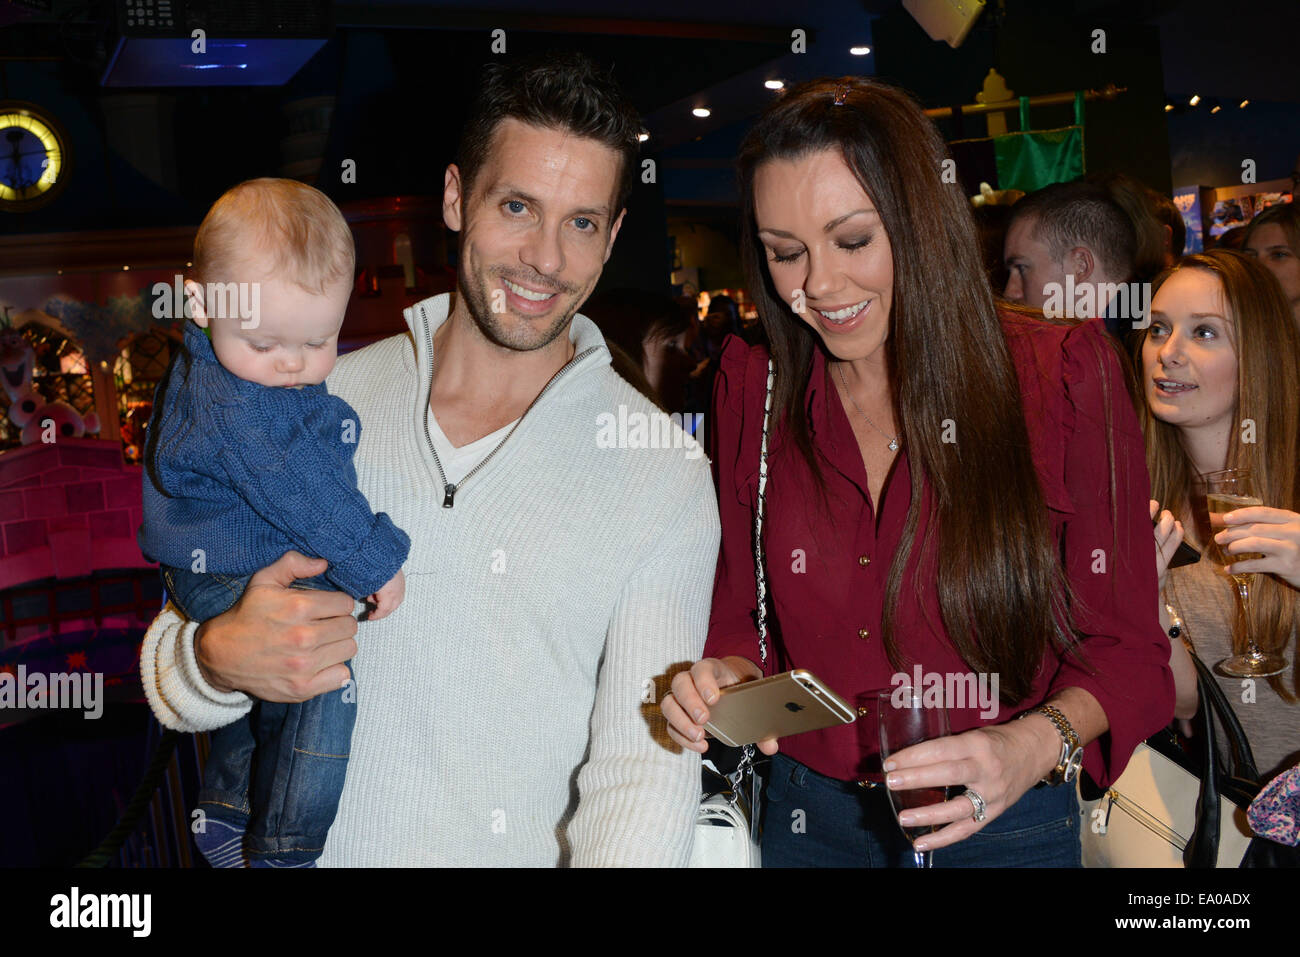 London, UK. 4th November, 2014. Linzi Stoppard  and Will Stoppard with daughter attends the Disney Store launches - Stock Image